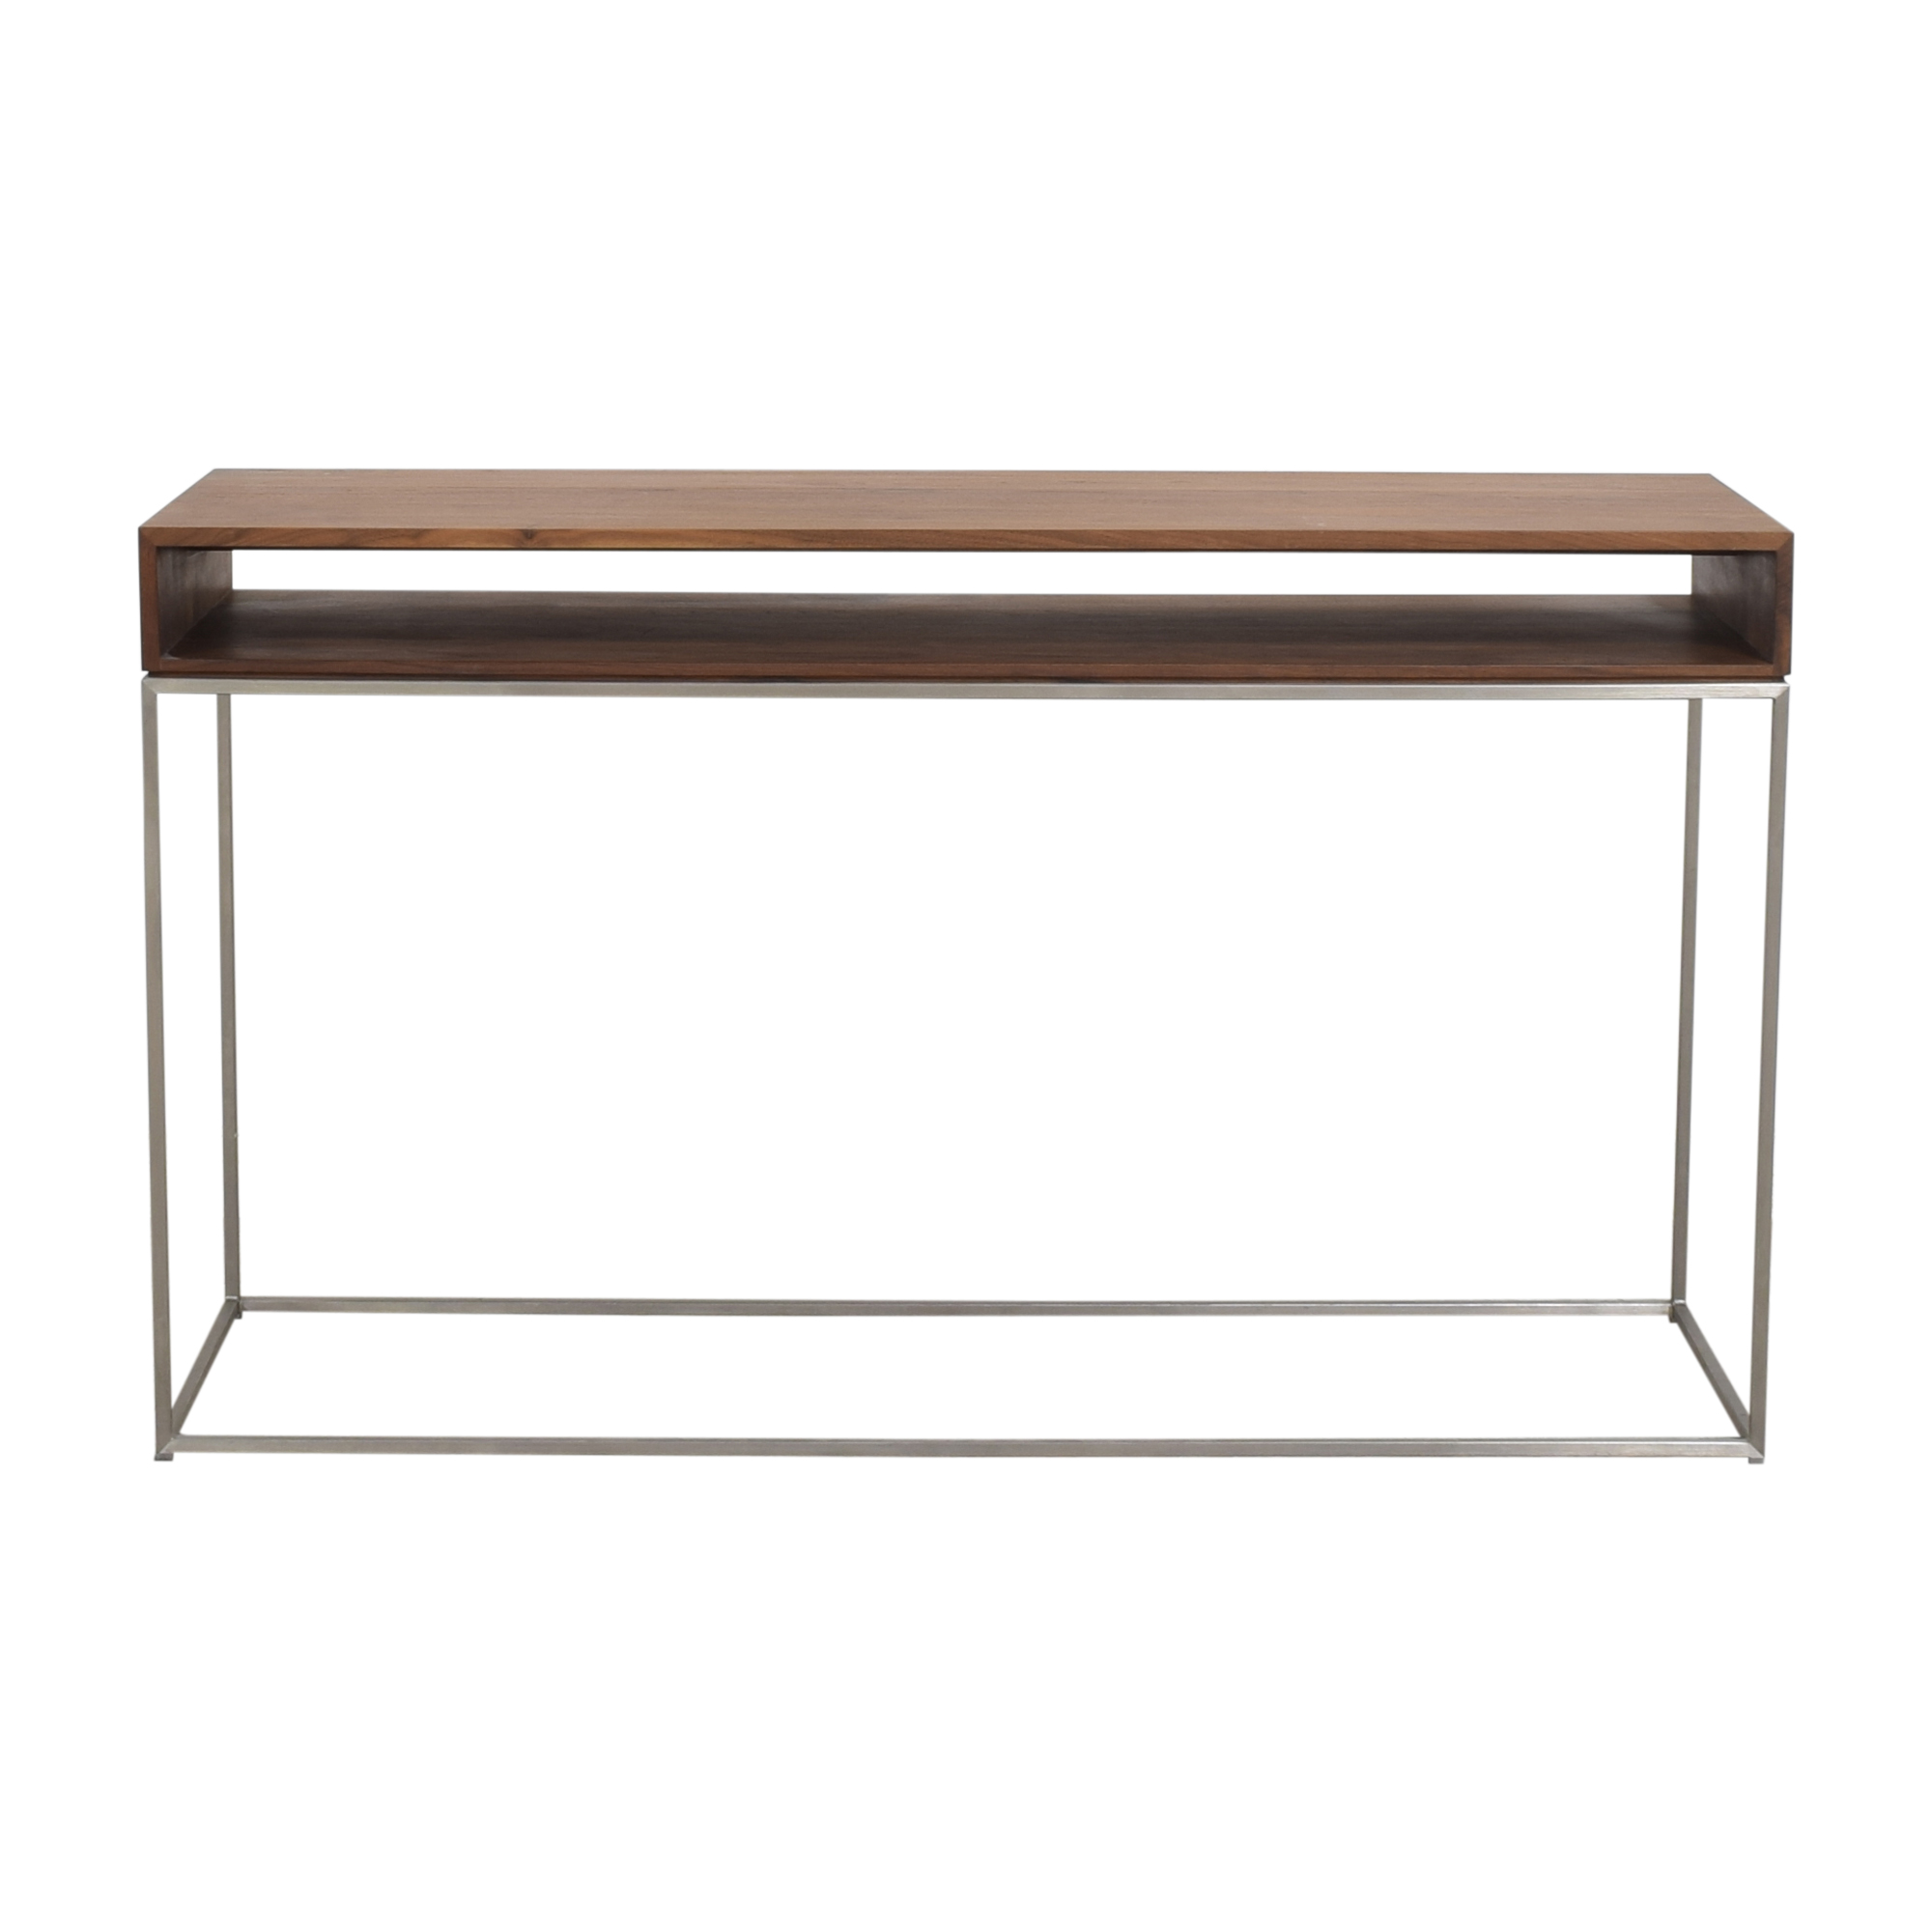 shop Crate & Barrel Frame Console Table Crate & Barrel Accent Tables